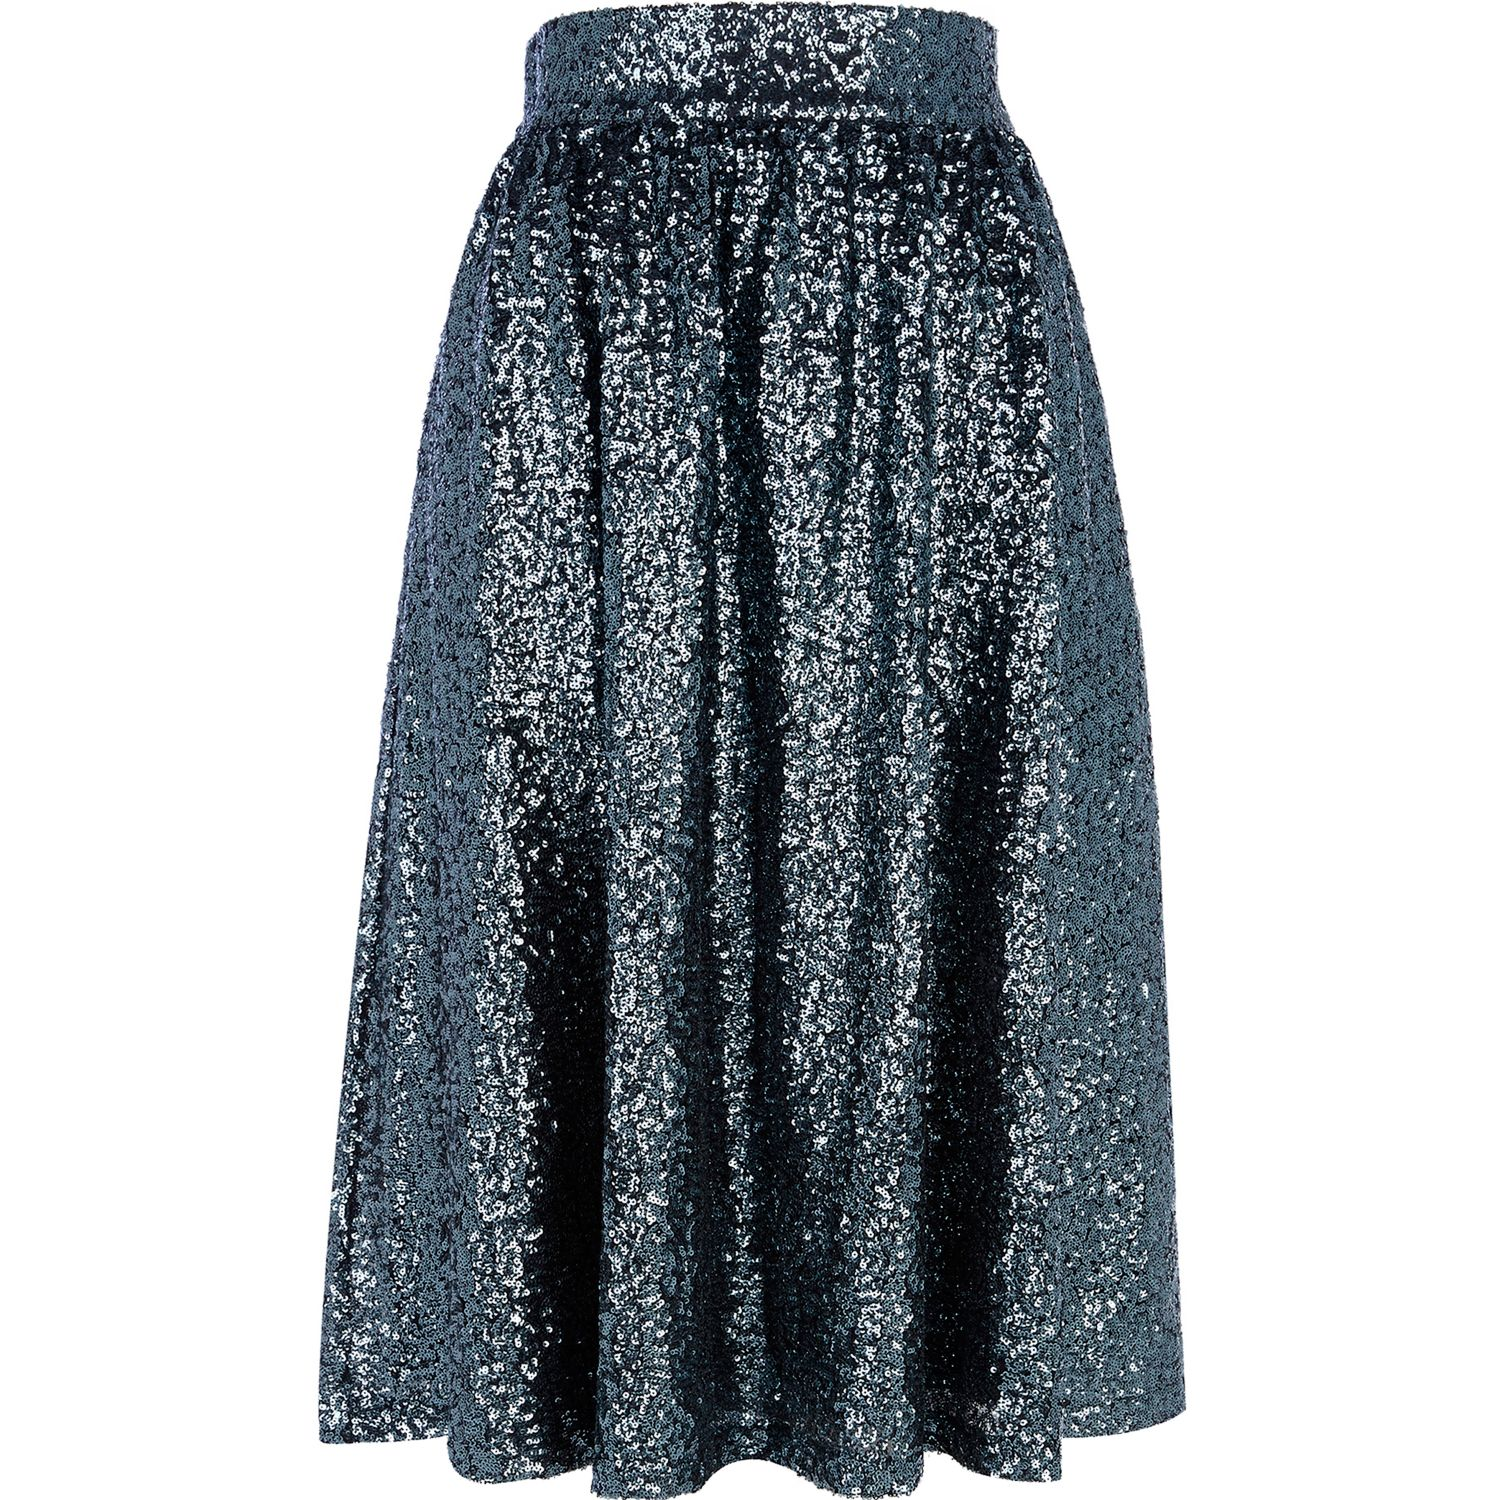 sequin skirt, holiday outfit ideas, sequin midi skirt, green sequin skirt